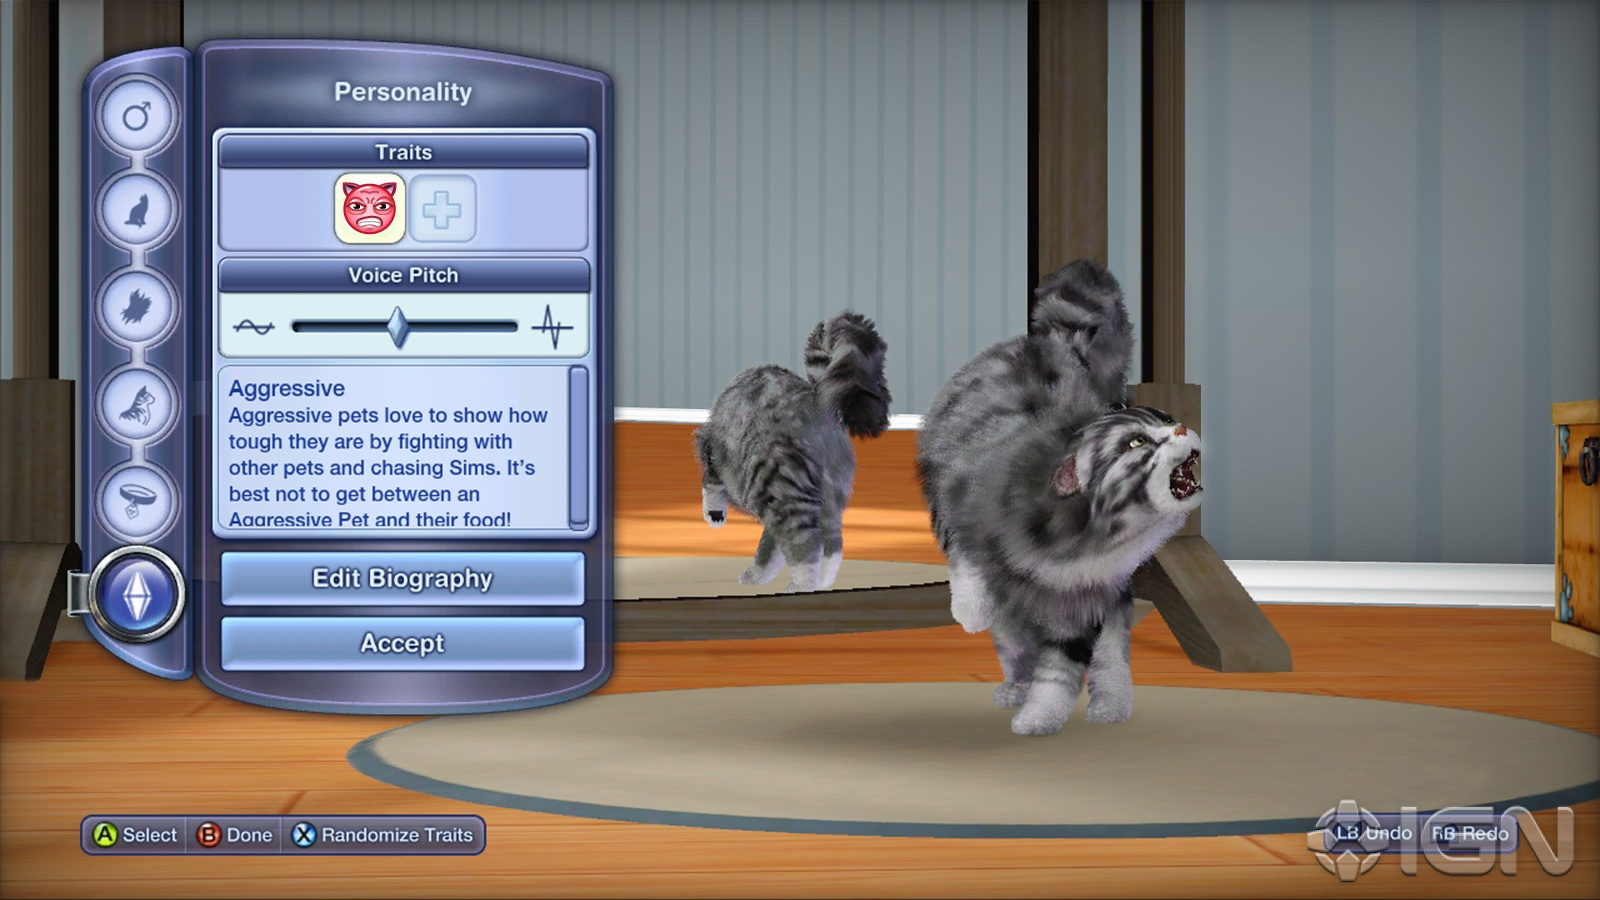 Pet trait (The Sims 3) | The Sims Wiki | FANDOM powered by Wikia